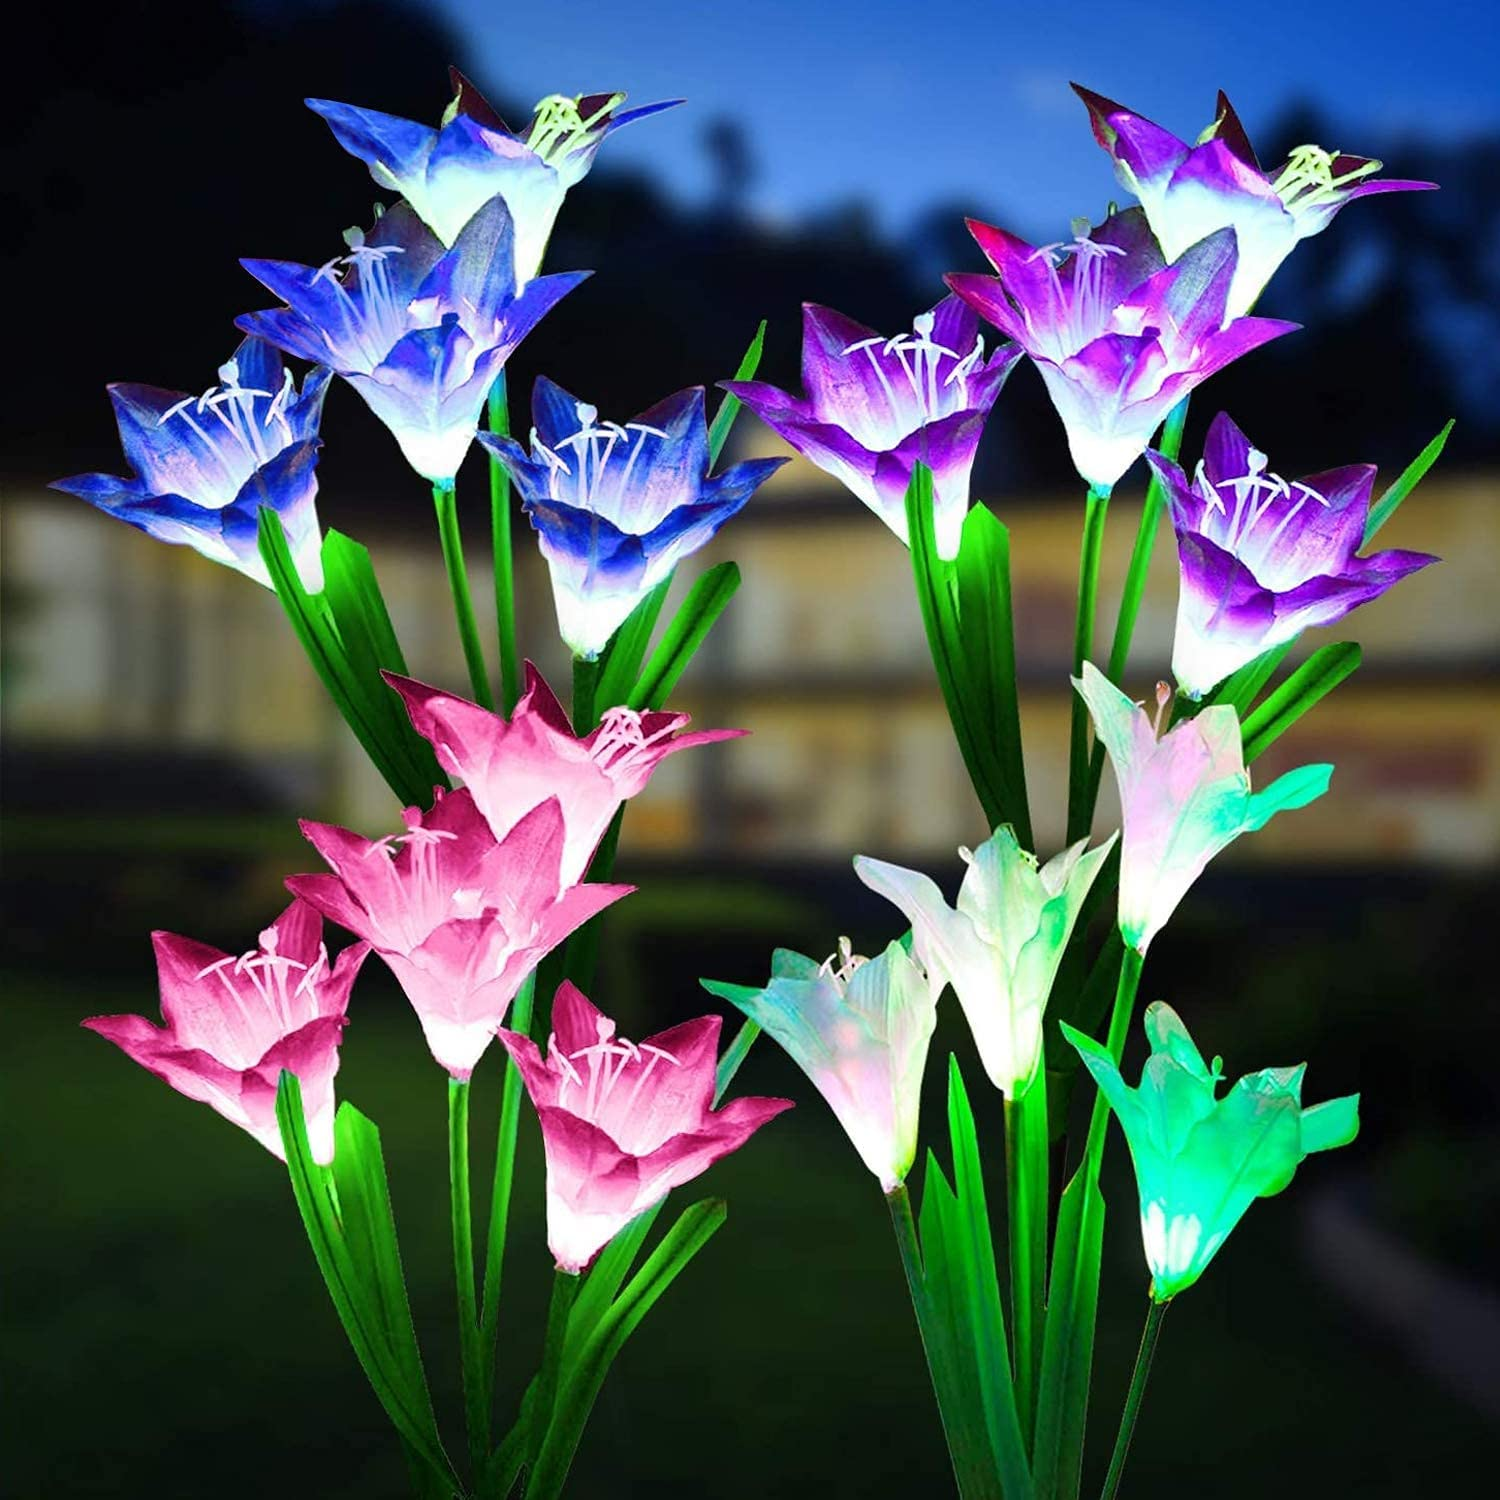 Devo Upgraded Solar Lights Outdoor Color Changing Lily Solar Flower Lights Solar Garden Lights 4Pack Decorative 16 Lily Flowers LED Light Waterproof Garden Patio Pathway(Blue,White,Red,Purple)